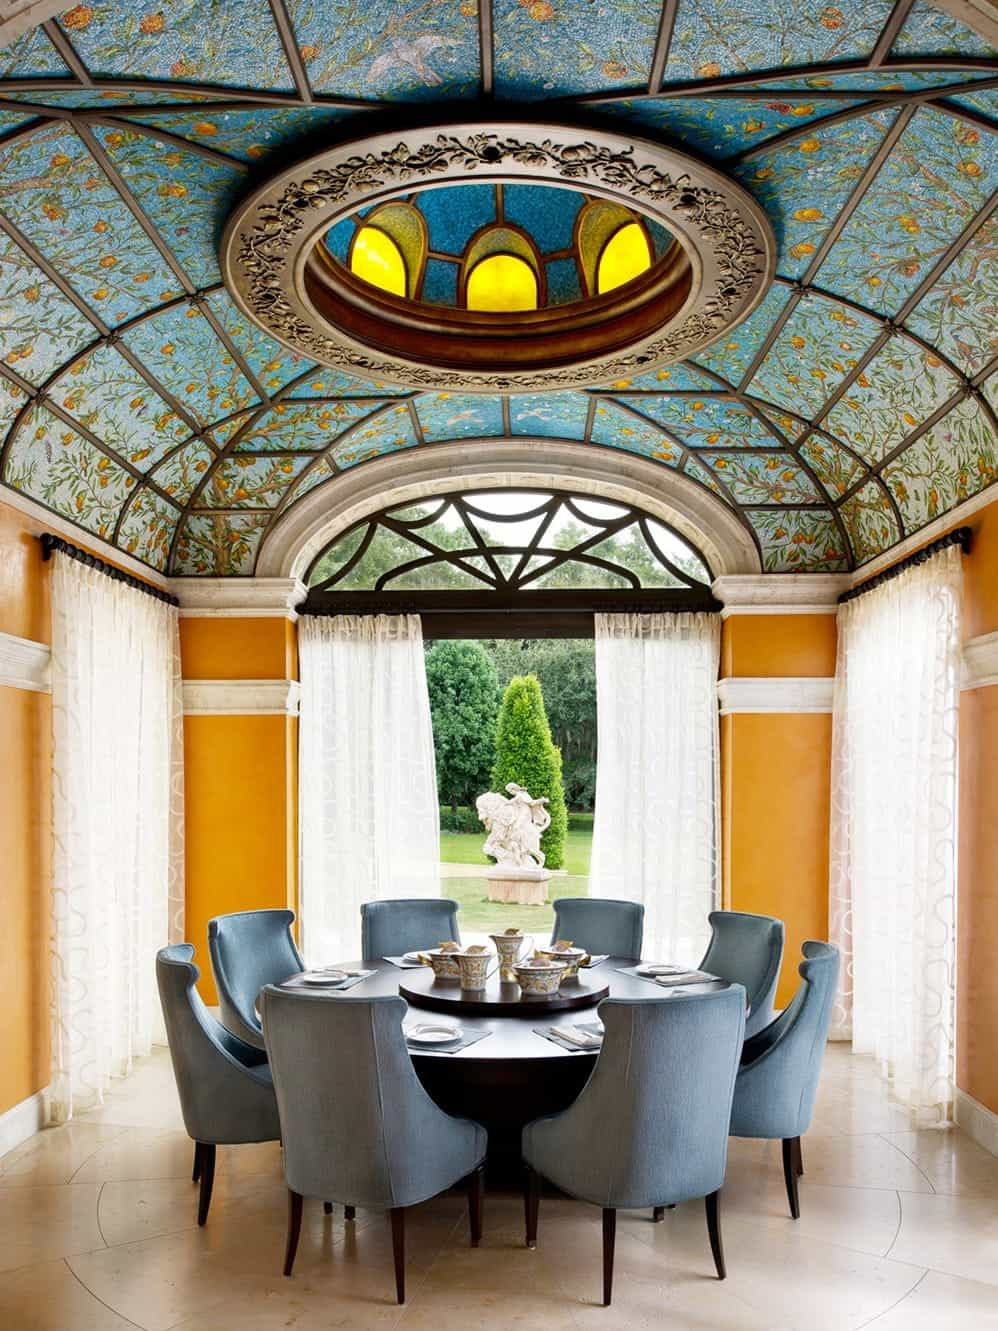 Beautiful Dining Room With Ornate Ceiling And Round Dining Table (Photo 25 of 25)